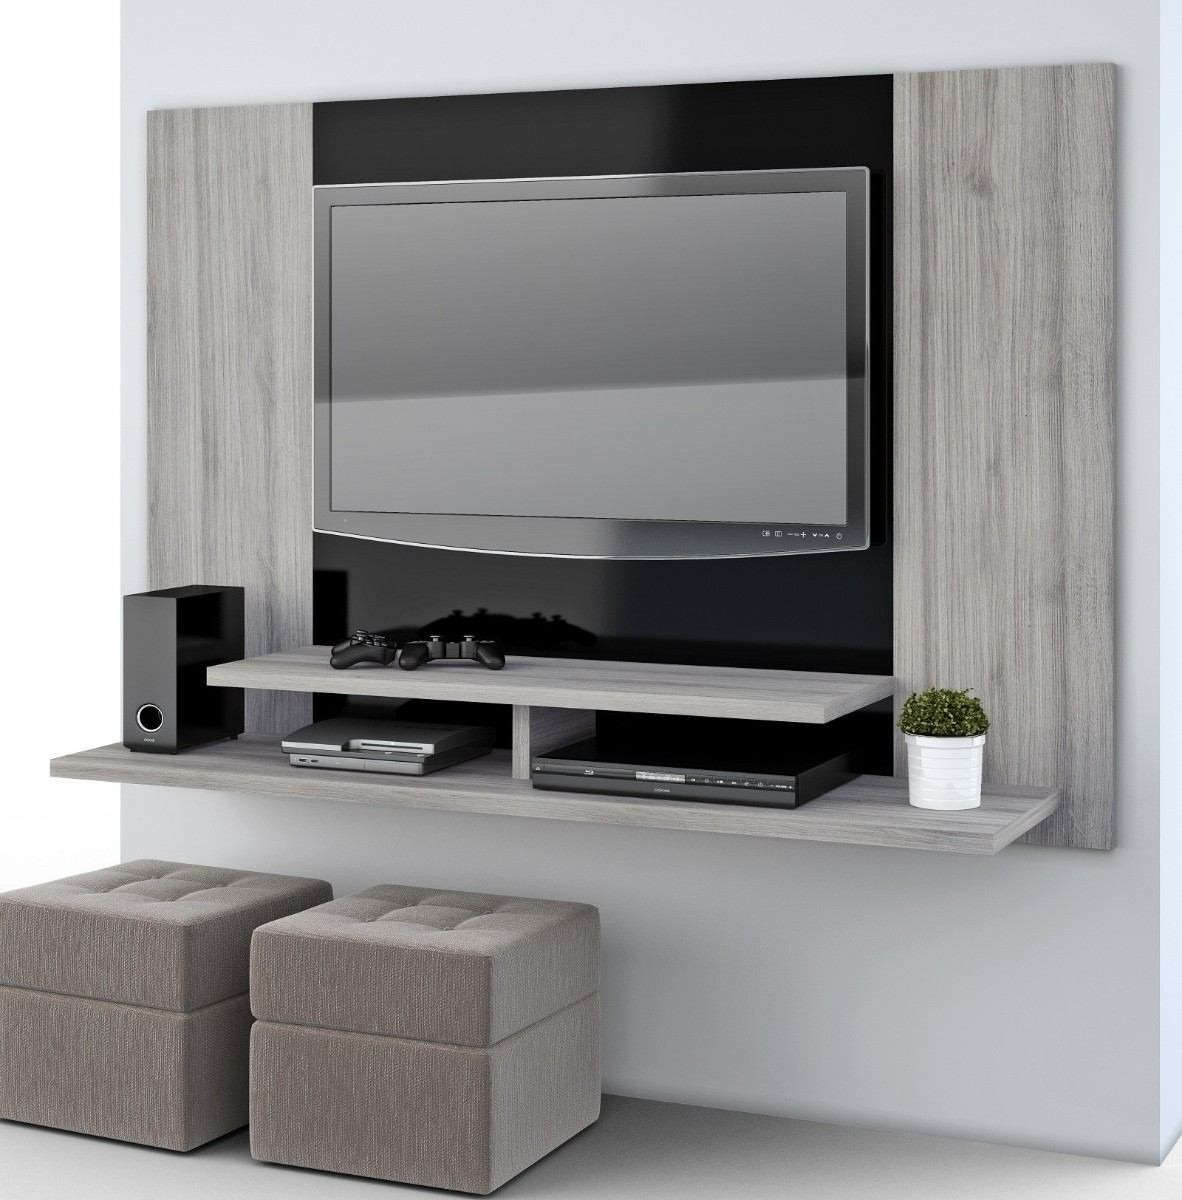 Mueble flotante para tv moderno ref manhatan for Imagenes de muebles para tv en madera